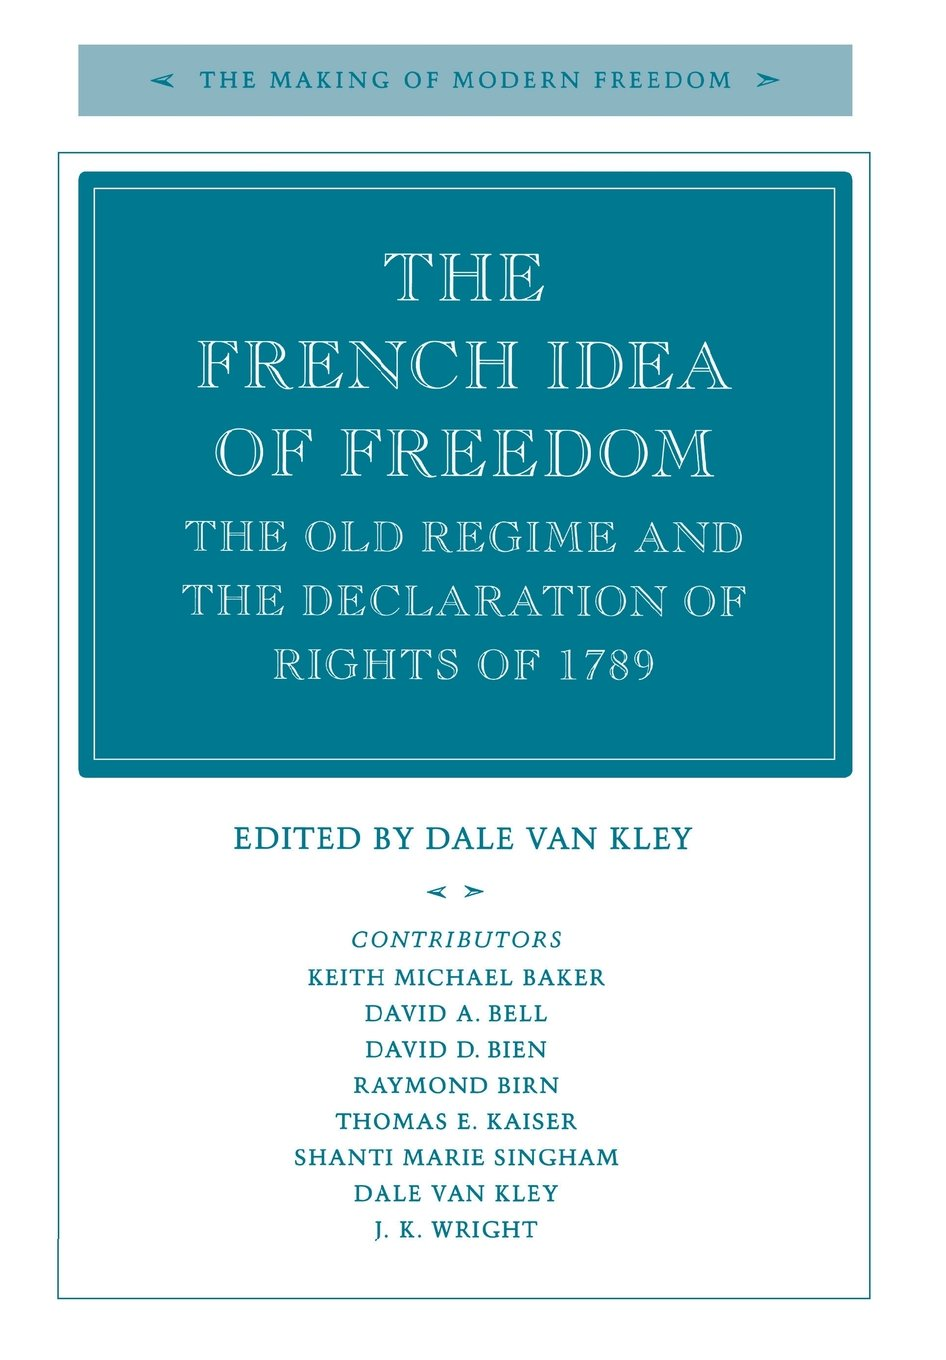 The French Idea of Freedom: The Old Regime and the Declaration of Rights of 1789 (The Making of Modern Freedom)